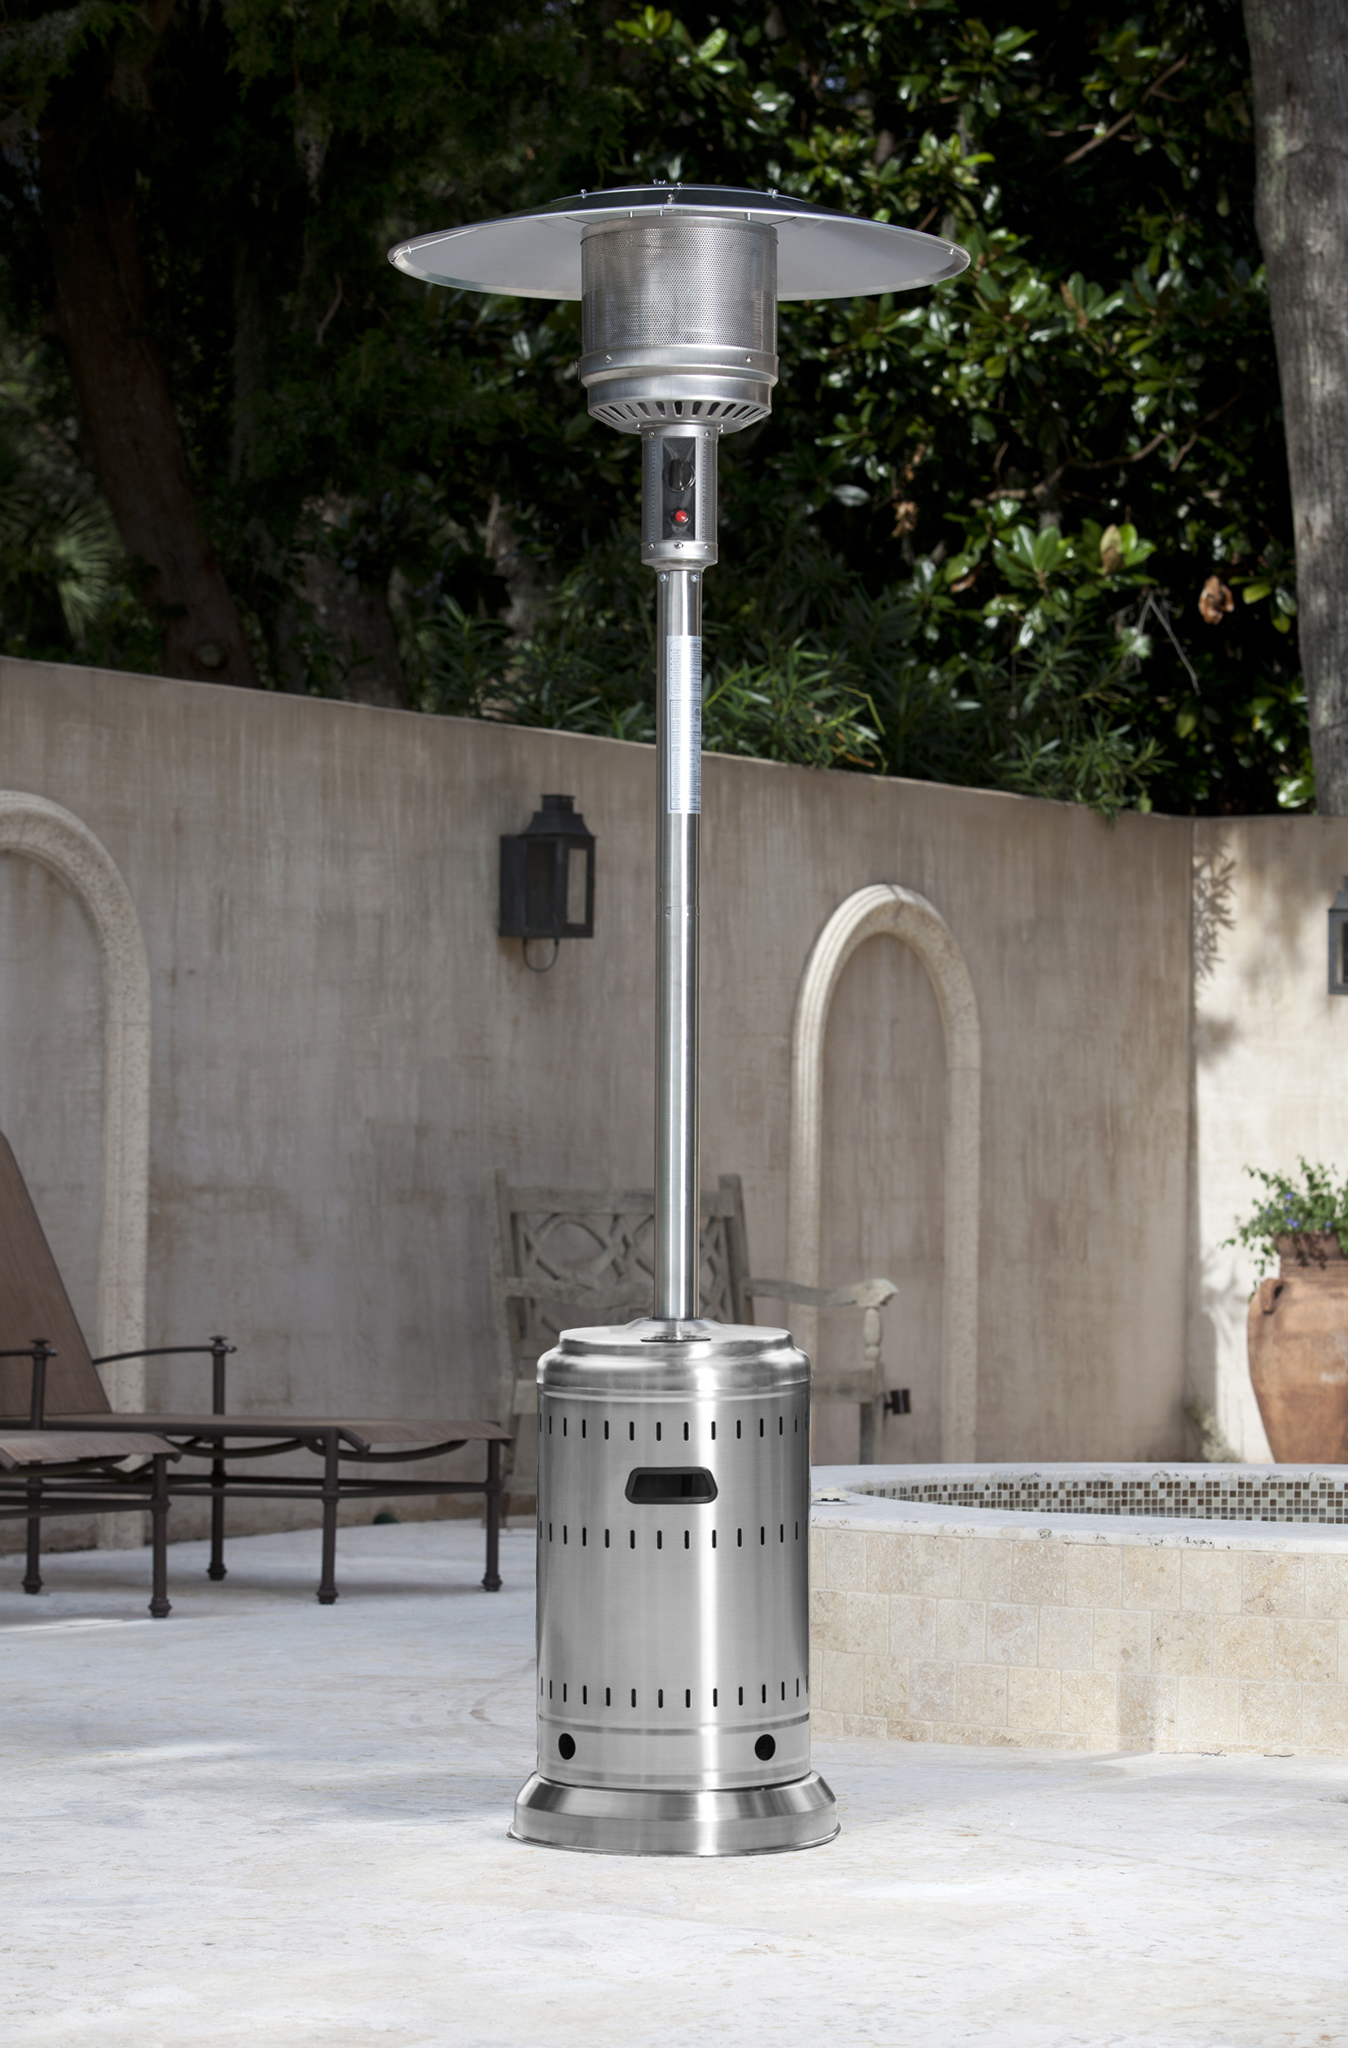 Stainless Steel Commercial Patio Heater   Costco.com Exclusive